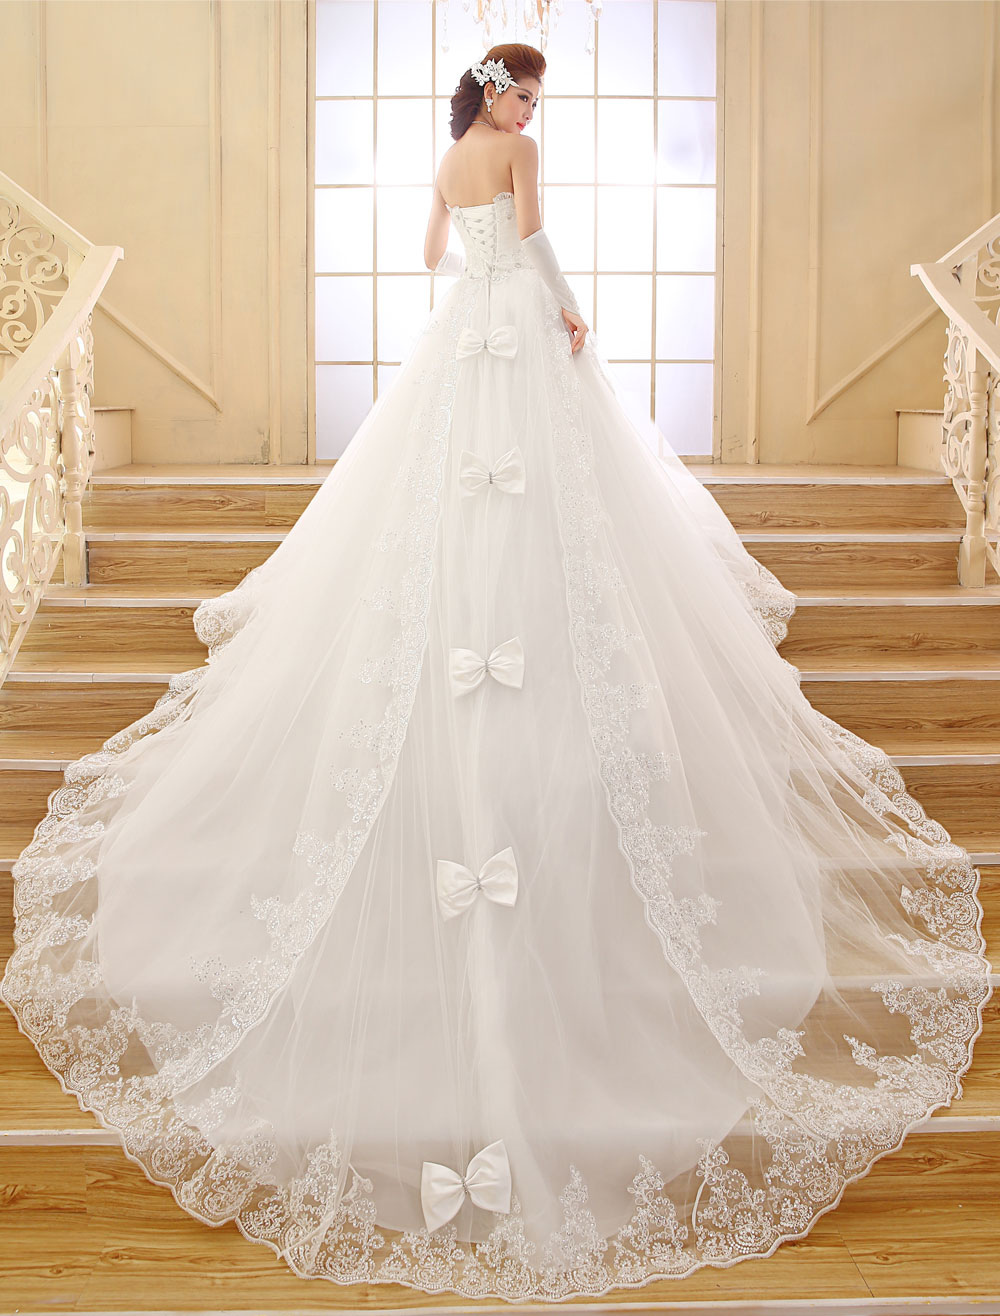 Princess wedding dresses strapless ball gown bridal dress for Ball gown wedding dresses with sweetheart neckline and beading